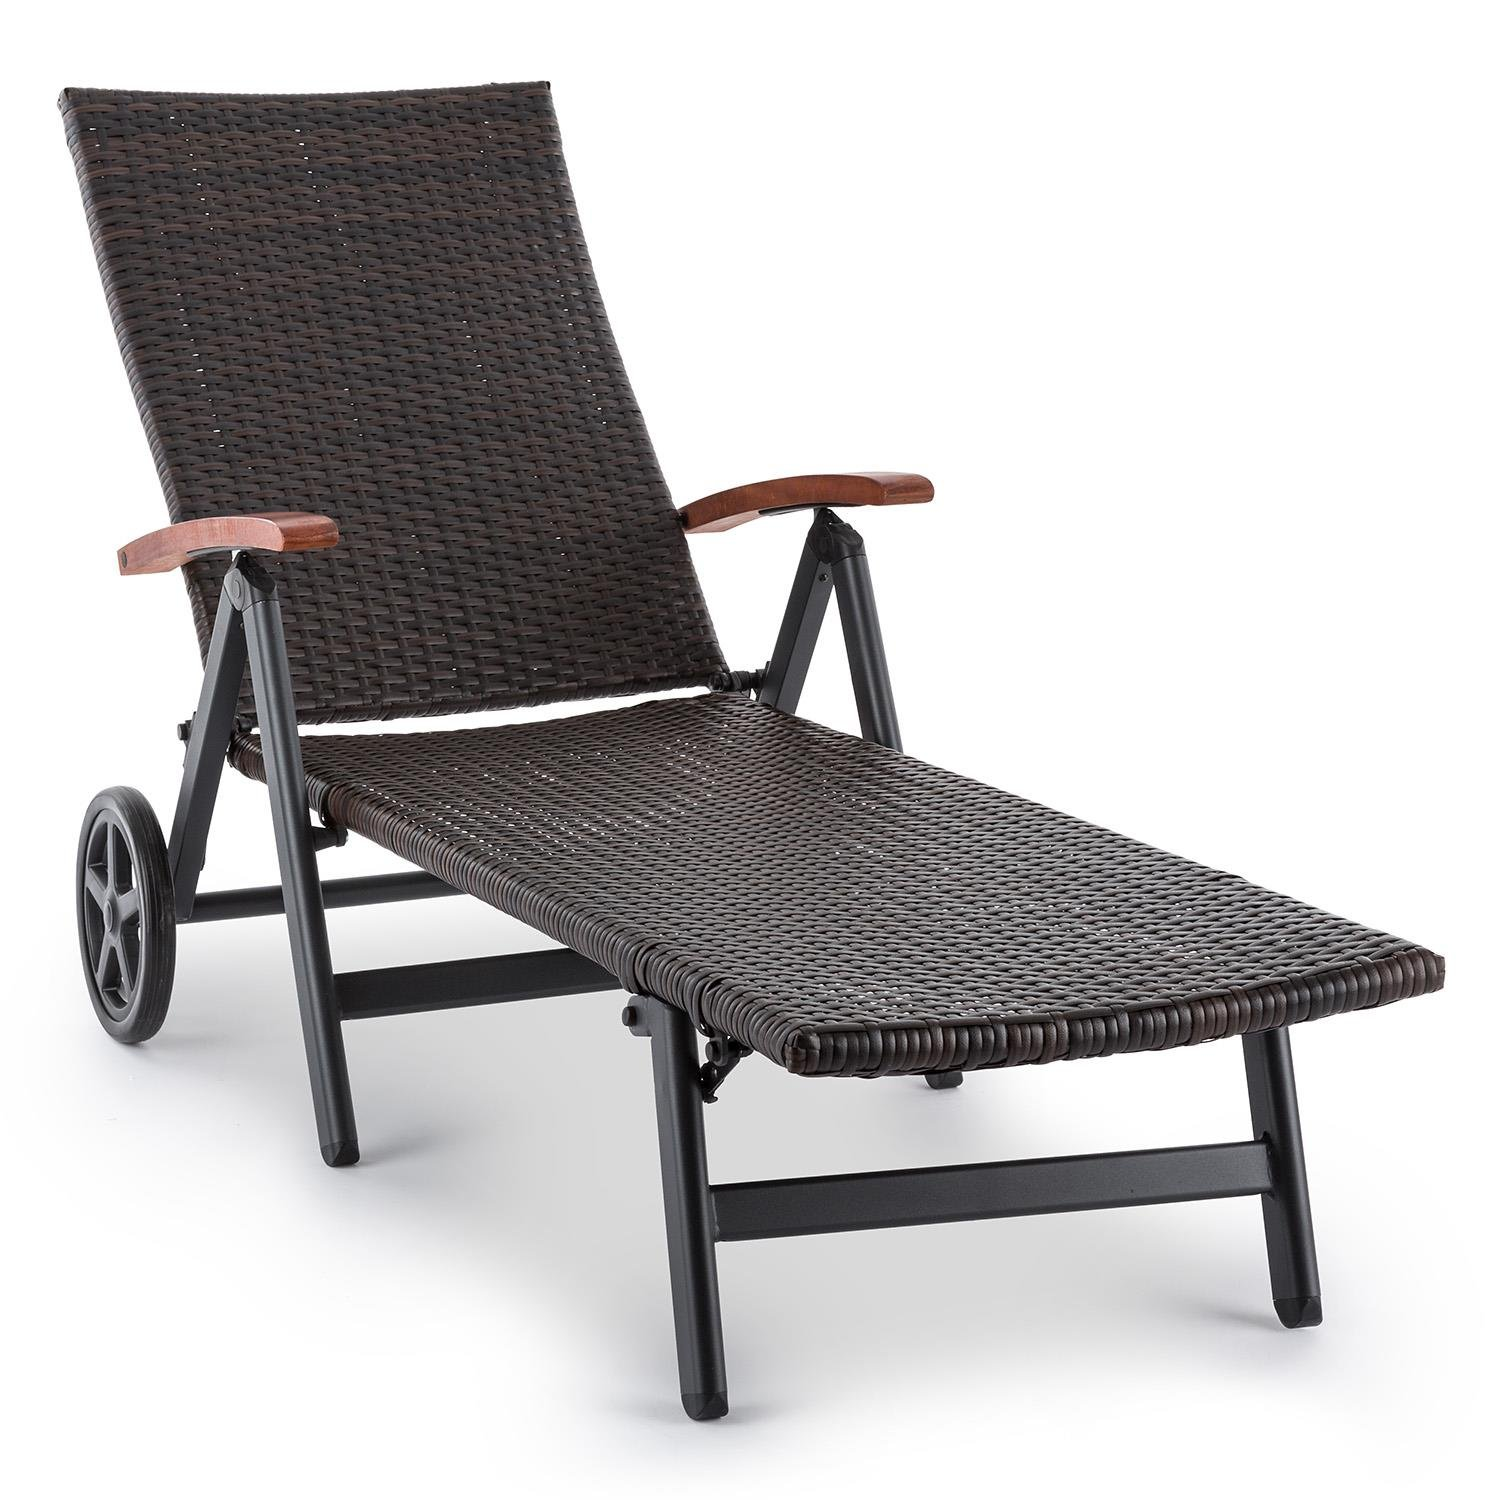 Blumfeldt Korsika Folding Chair with Armrests (58.5x103x75 cm, 4-Stage Adjustable Backrest, Woven Wicker Look) Polyrattan Aluminum,